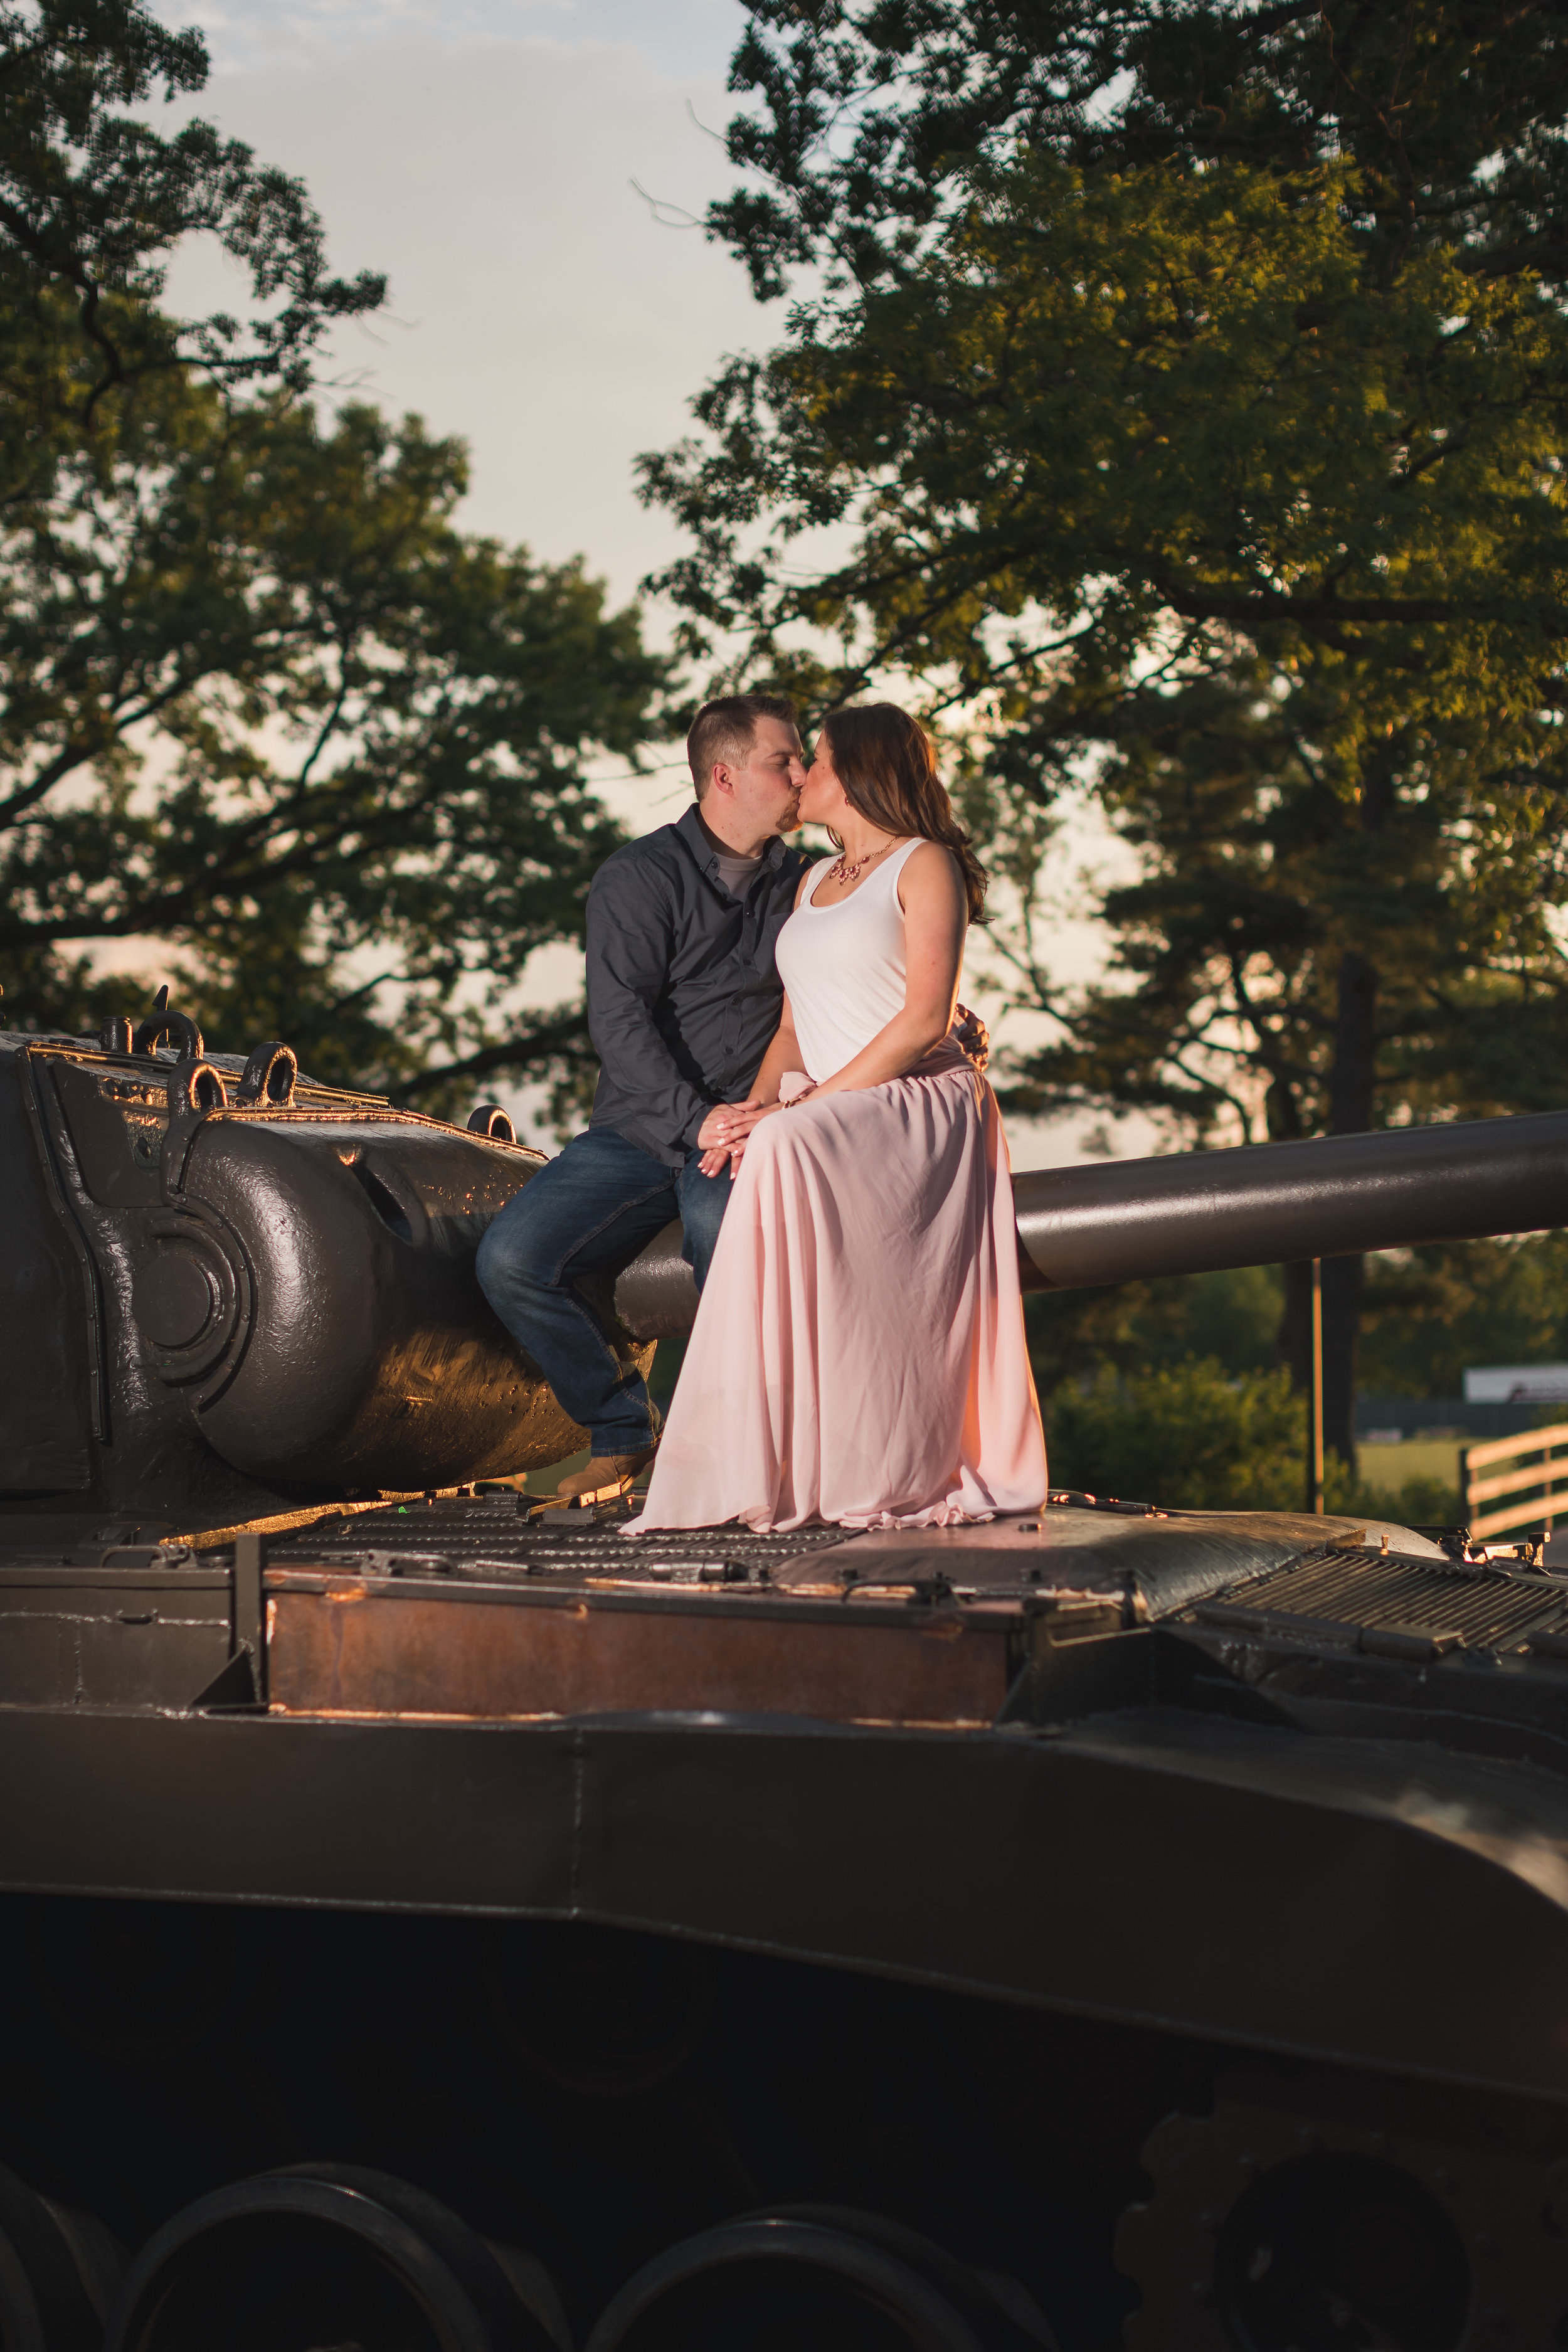 - Both Kelly and Kyle laughed throughout the shoot, which made it easy to capture genuine emotions and you could see the love they have for each other. There are many gorgeous spots to take pictures at Cantigny Park and we just about hit them all during our three hour session. One of my favorites is the one with the tank! I mean, it's not everyday you can take a picture while sitting on a tank.